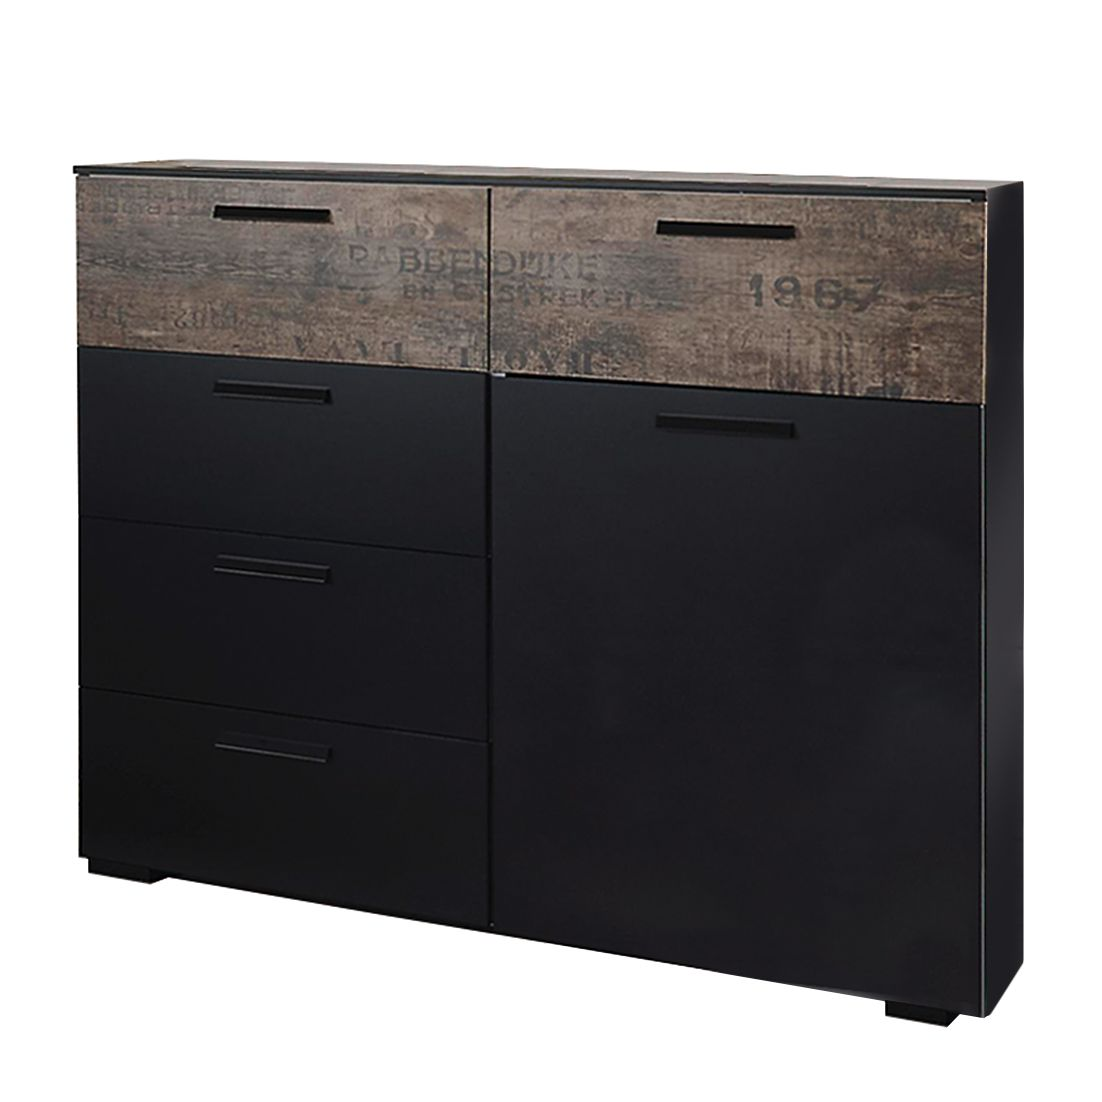 Commode Sumatra I - Noir / Brown de cru, Rauch Select